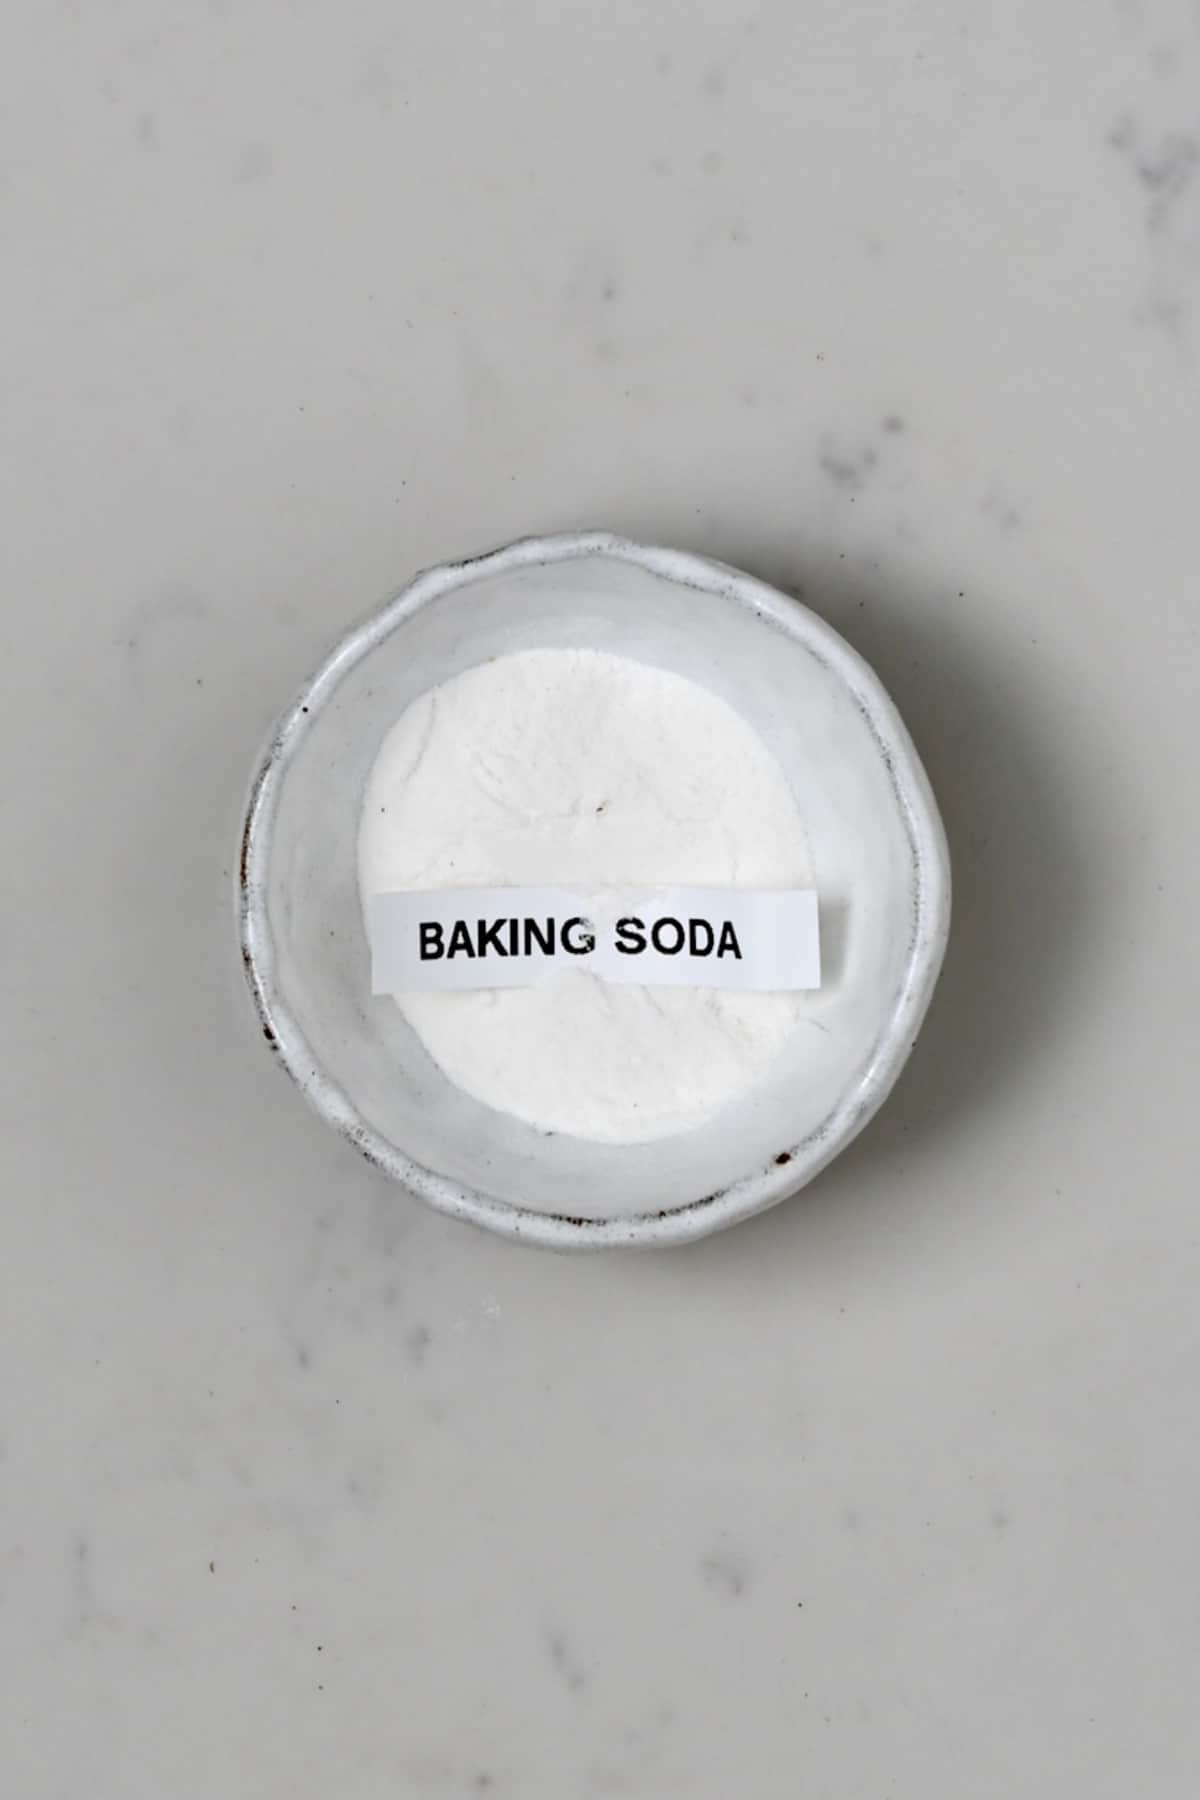 Baking soda in a small bowl